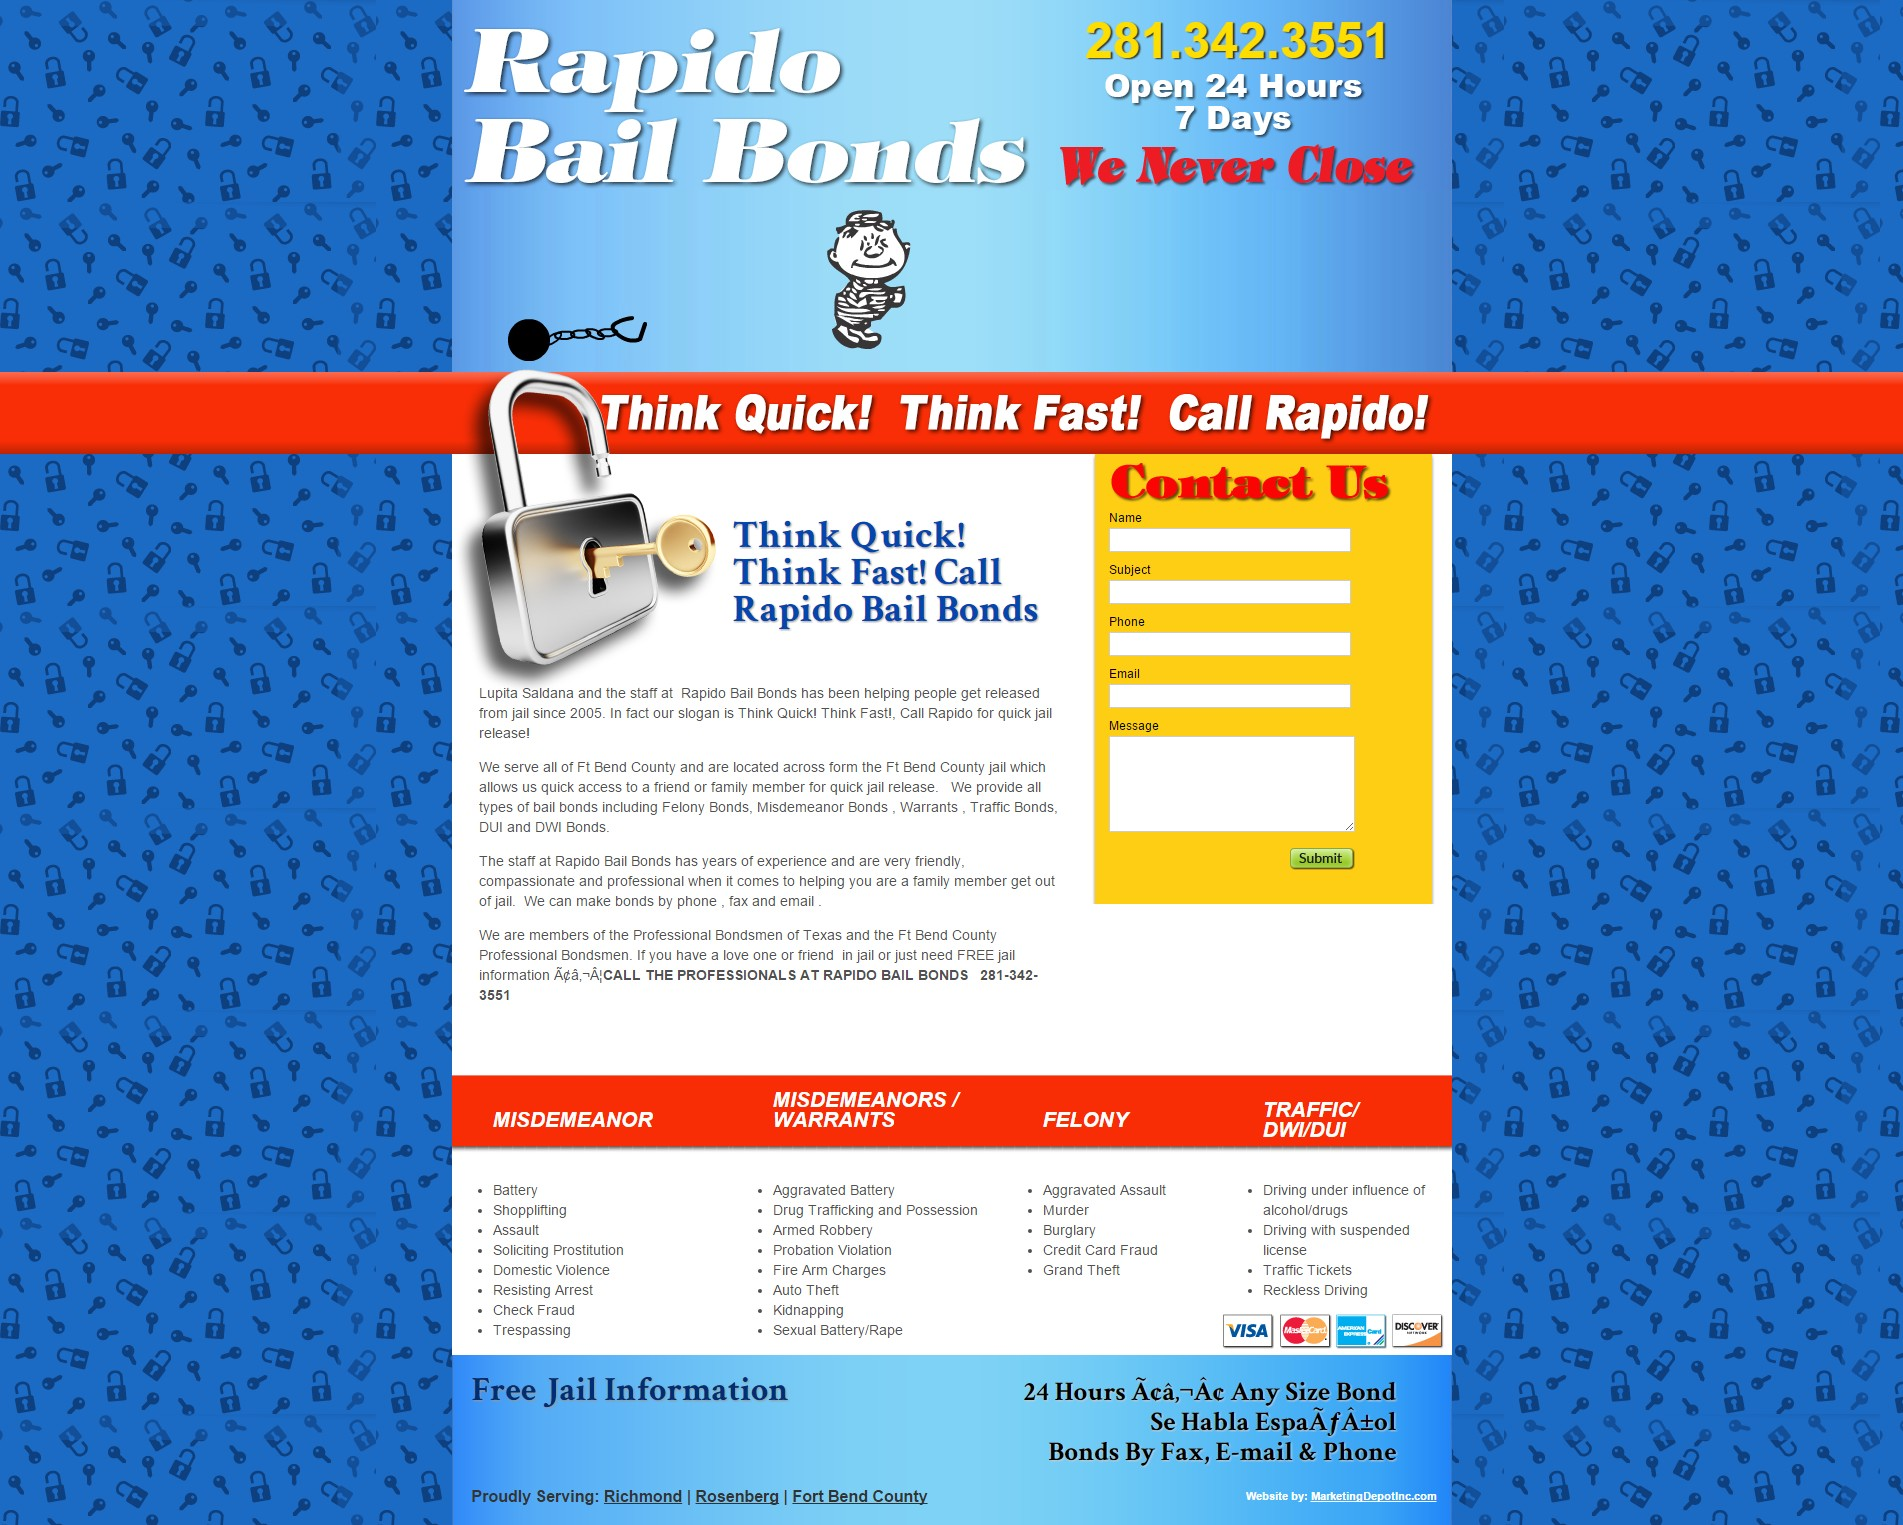 Rapido Bail Bonds